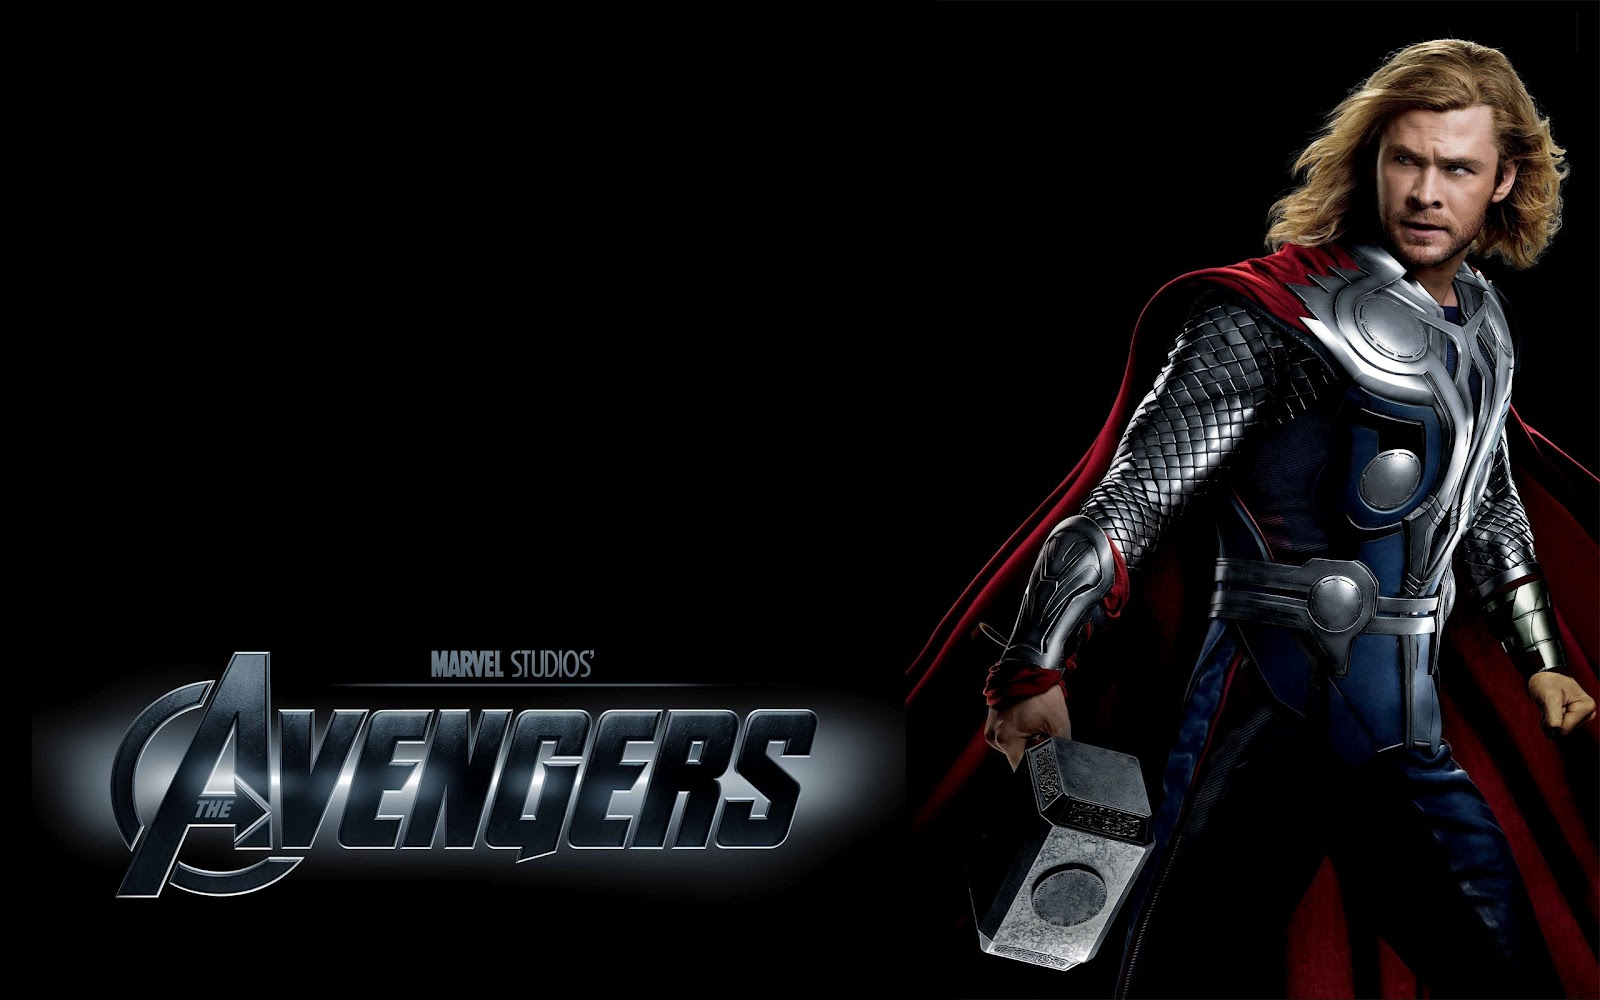 the avengers all characters posters hd wallpapers hd